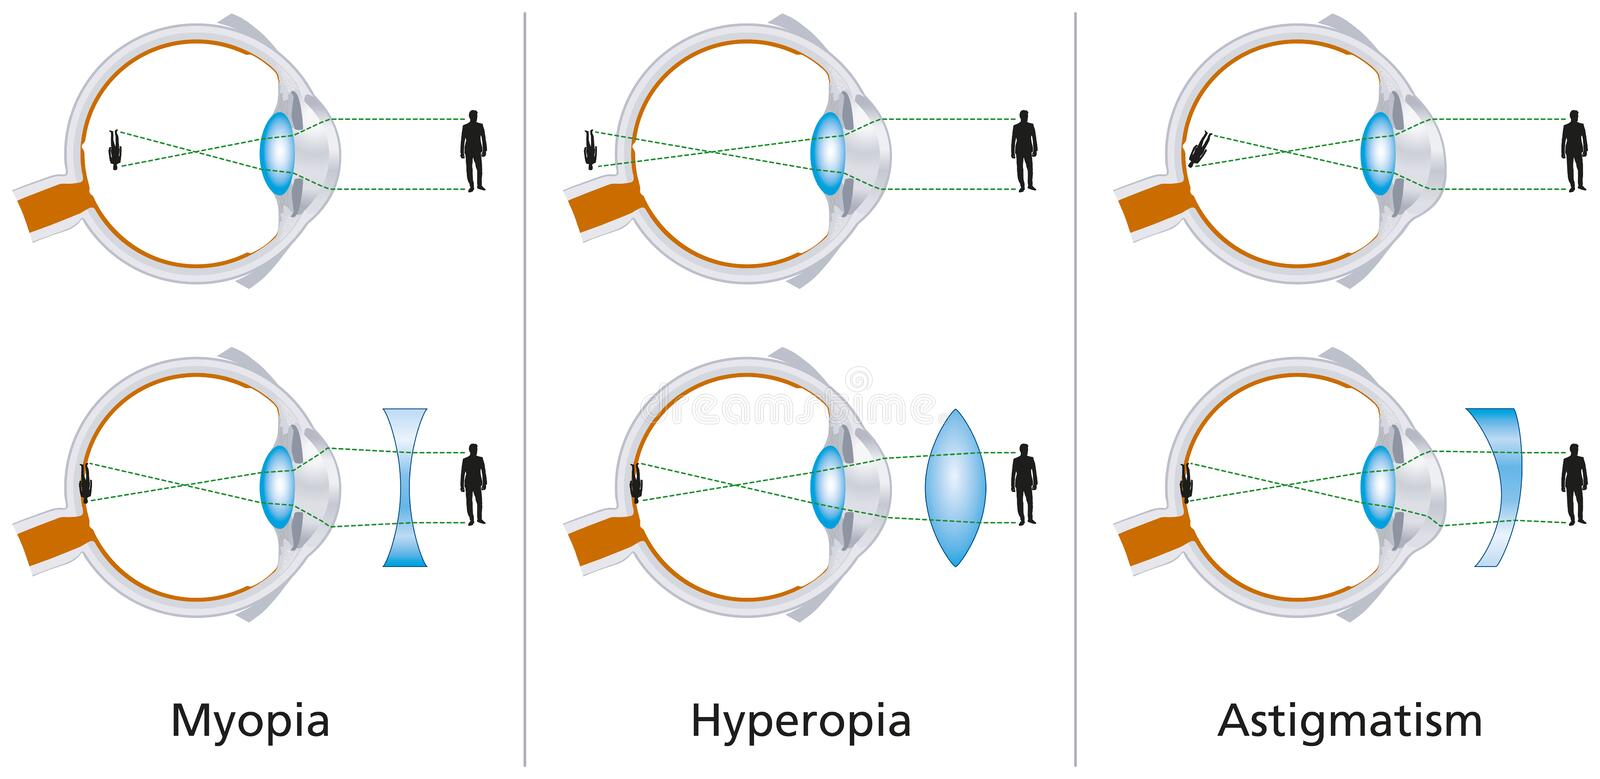 Vision Defects - Myopia, Hyperopia And Astigmatism. Illustration of the three vision defects Myopia, Hyperopia and Astigmatism and how to correct it with vector illustration